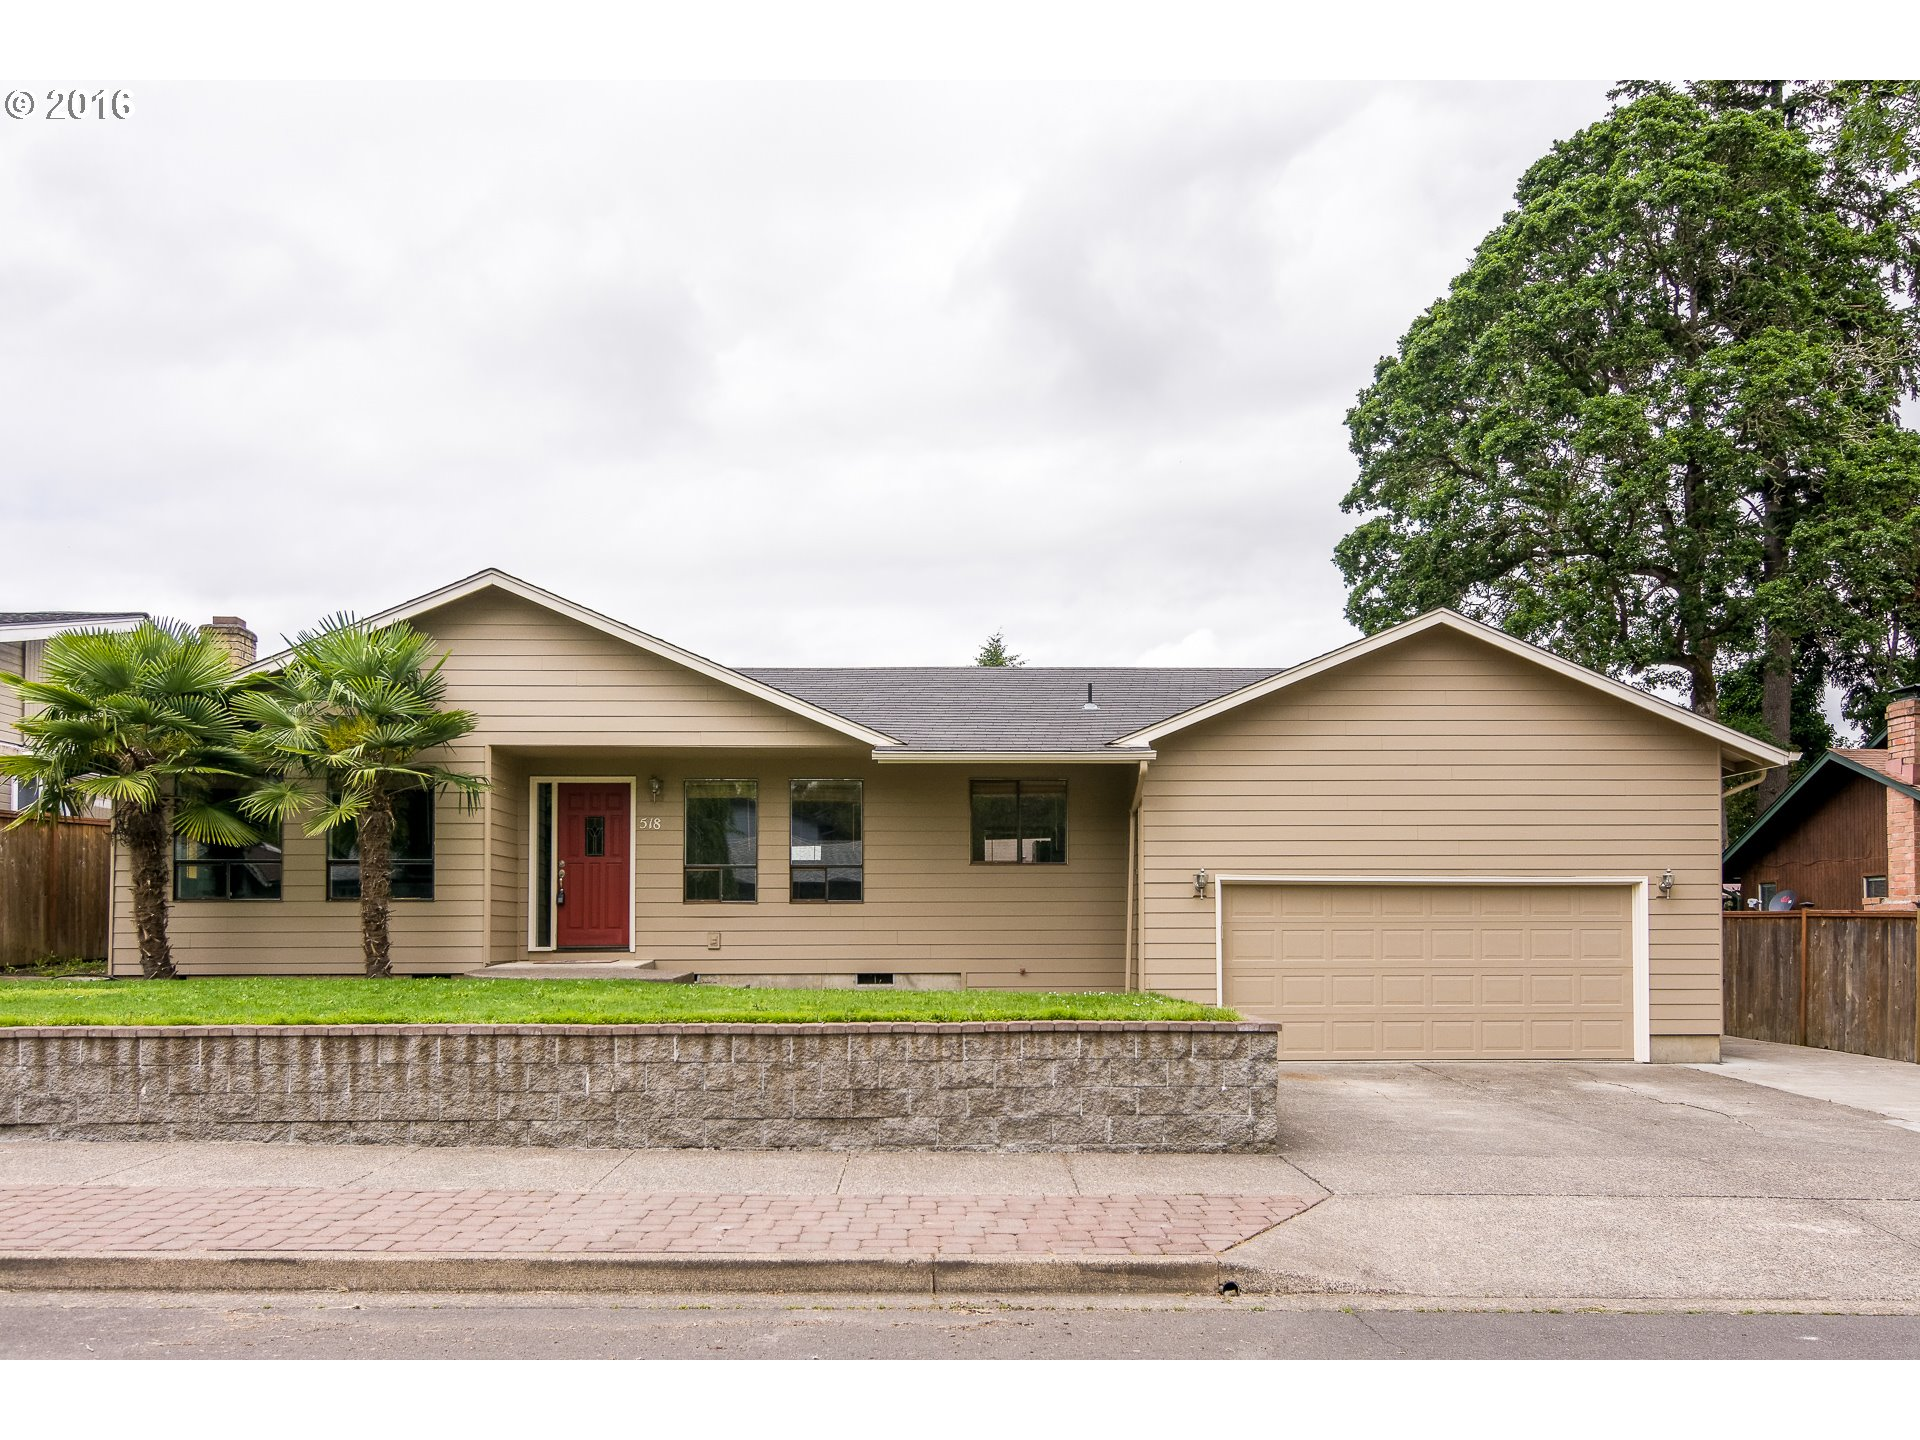 518 67TH PL, Springfield OR 97478